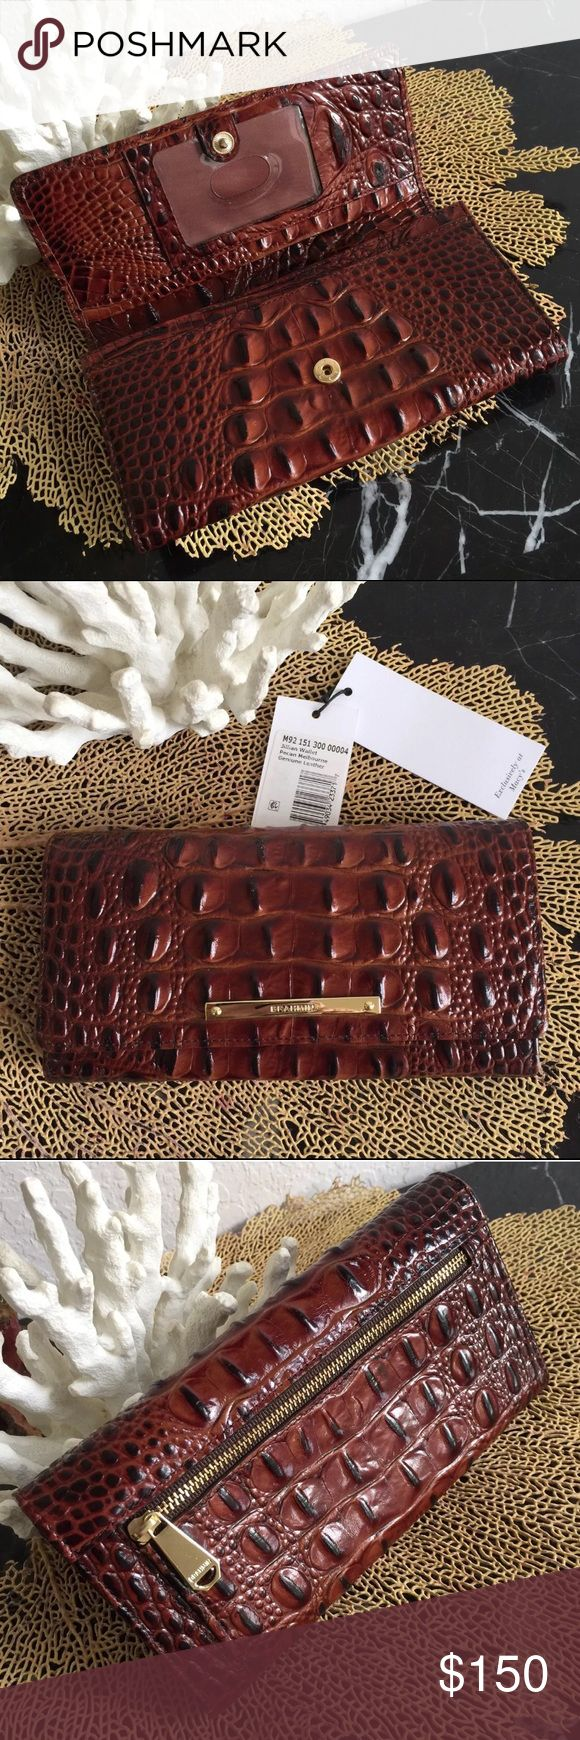 """⚓️NWT ⚓️BRAHMIN JILLIAN ⚓️PECAN ⚓️WALLET⚓️ Brahmin PECAN """"JILLIAN"""" Wallet  Croc embossed leather   12 Credit Card slots   Tons of organization! Roomy enough for your larger cell phone and a small ring of keys with its 4 slip in compartments plus center zip compartment   ID window   Also a back zip coin pocket  Snap closure   Goldtone hardware  Brand new, tag removed but will send, Pristine, never used    Fast shipping!! Brahmin Bags Wallets"""